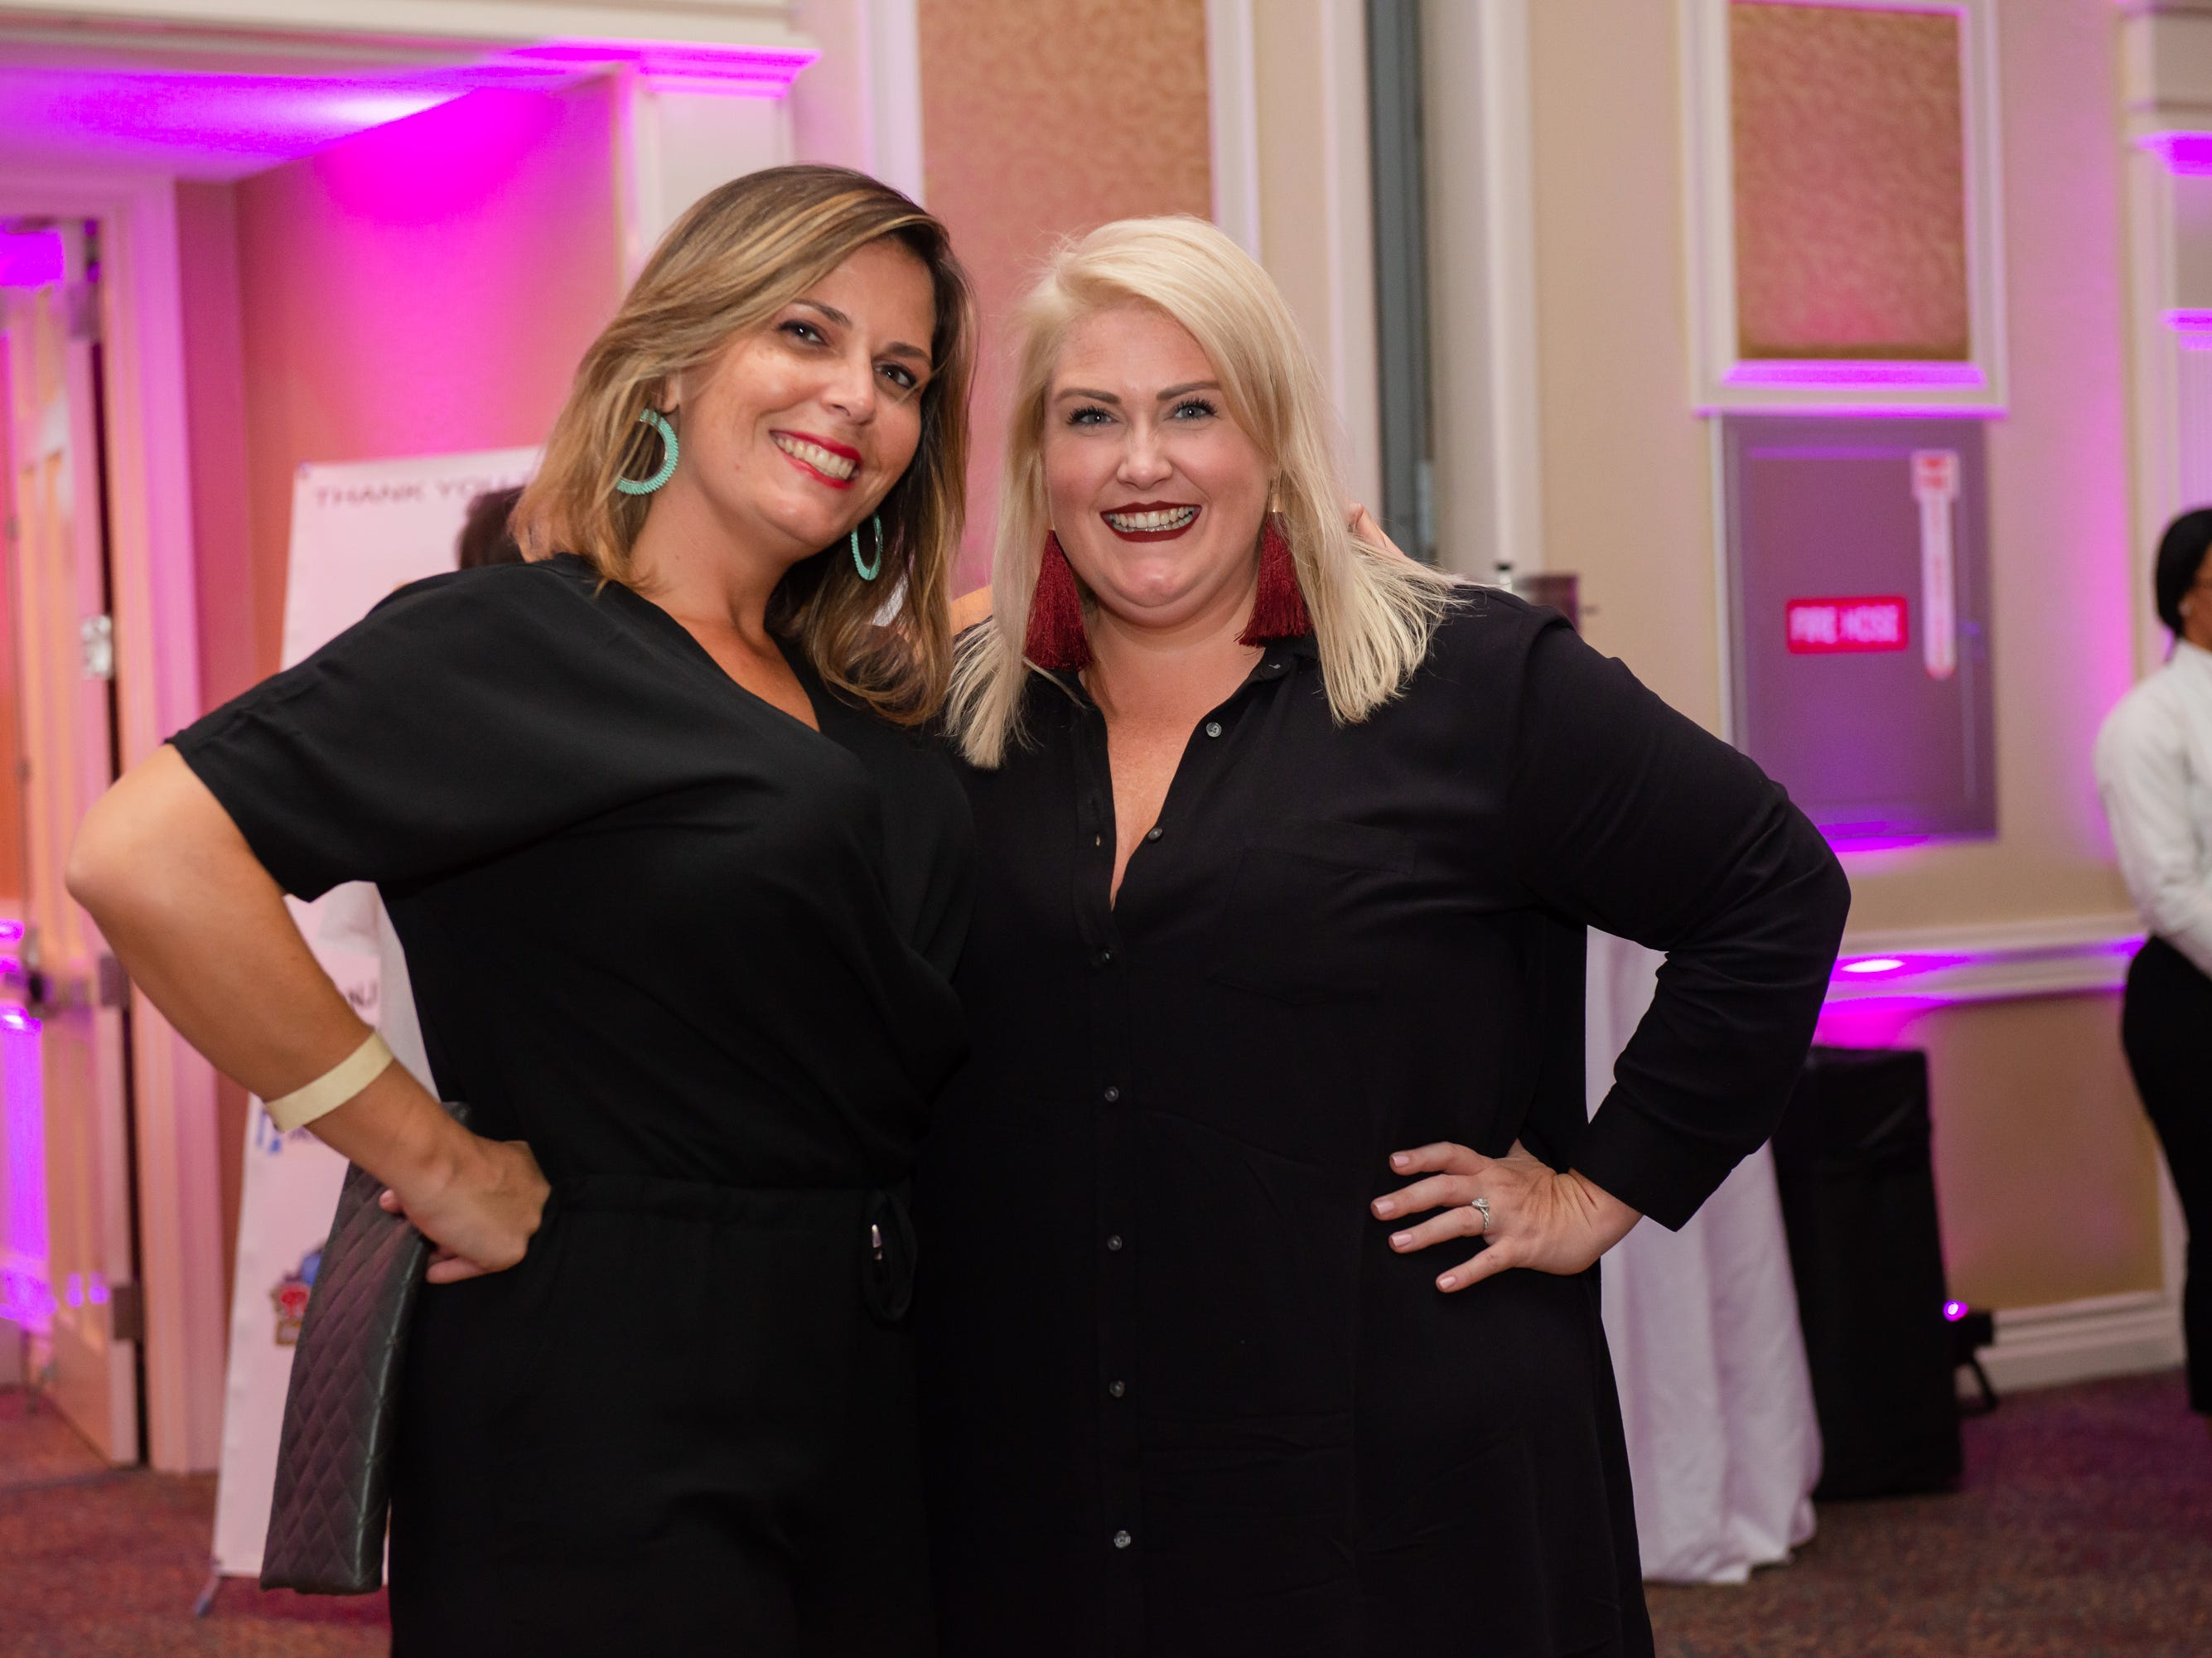 """Haley Thomspon and Chelsee Camero at """"Dude Looks Like a Lady"""" event benefitting the Women's Center."""